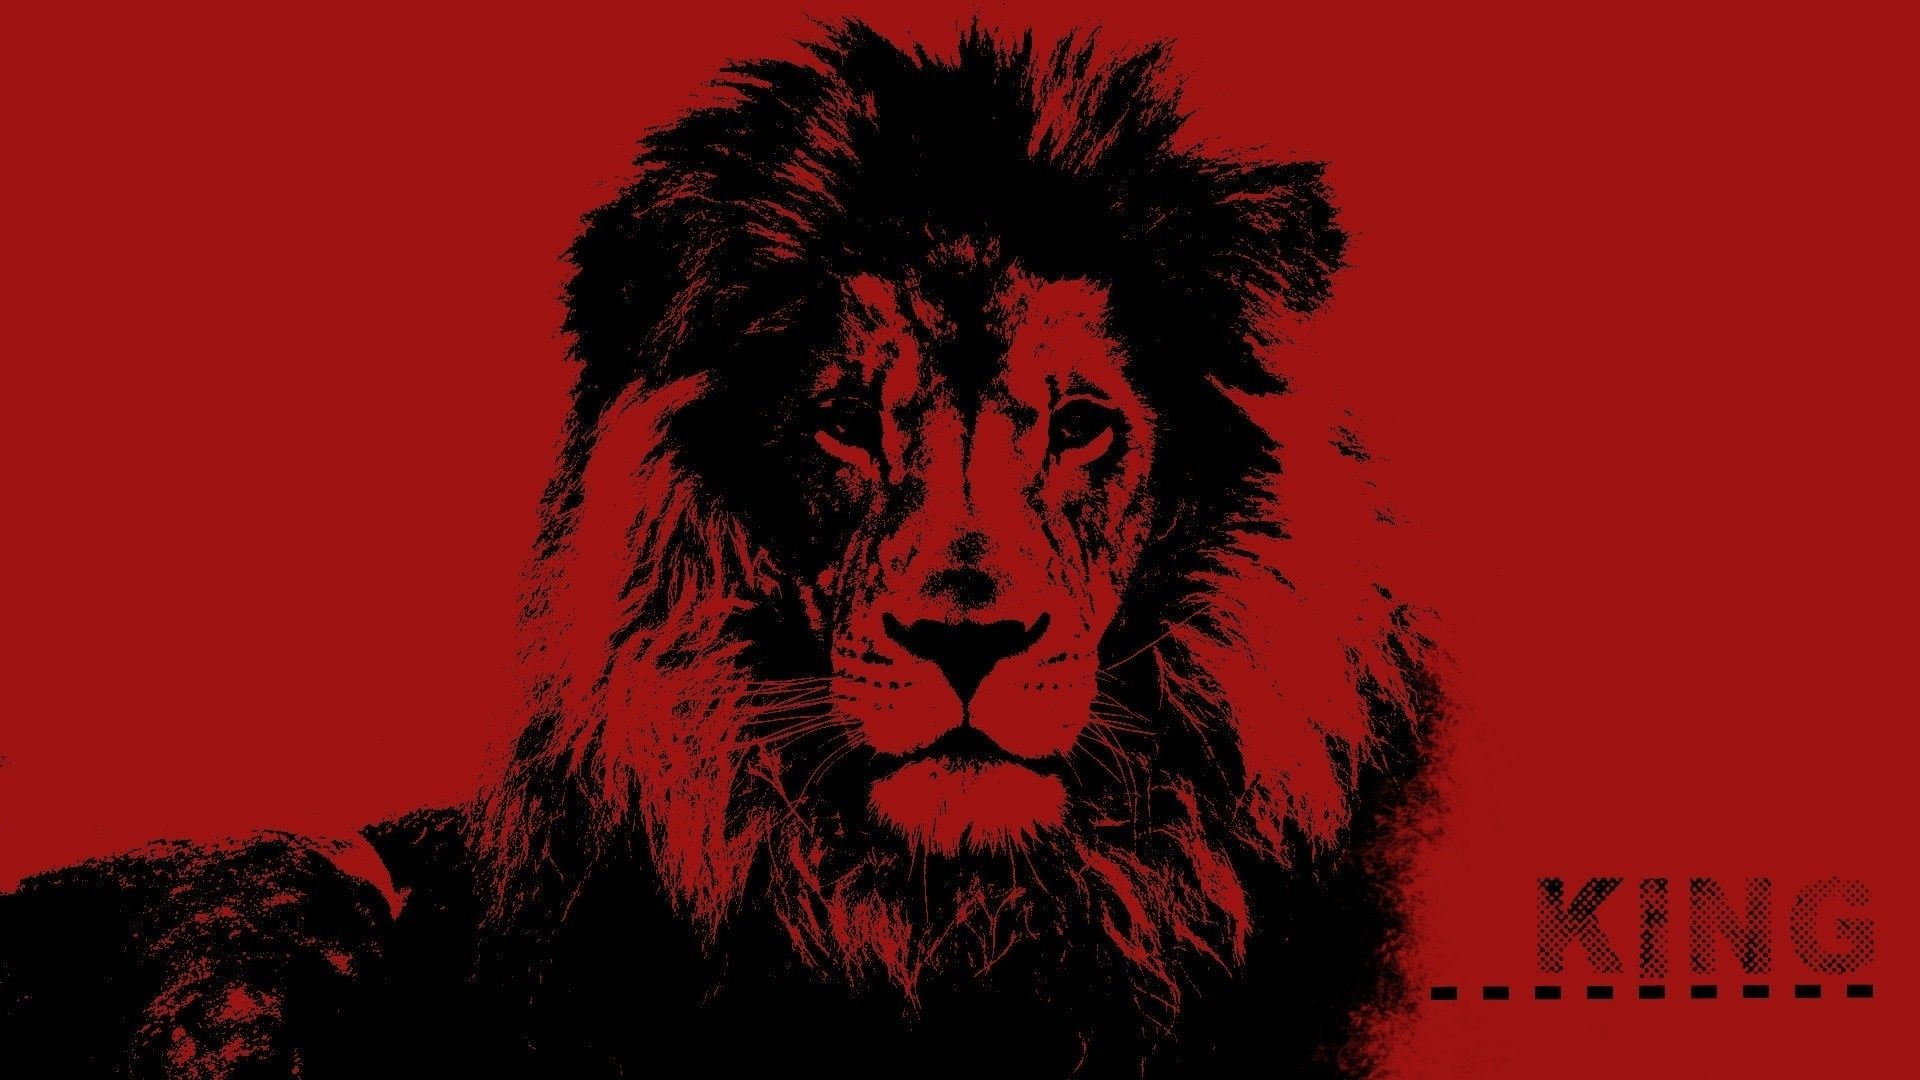 Lion Art background wallpaper